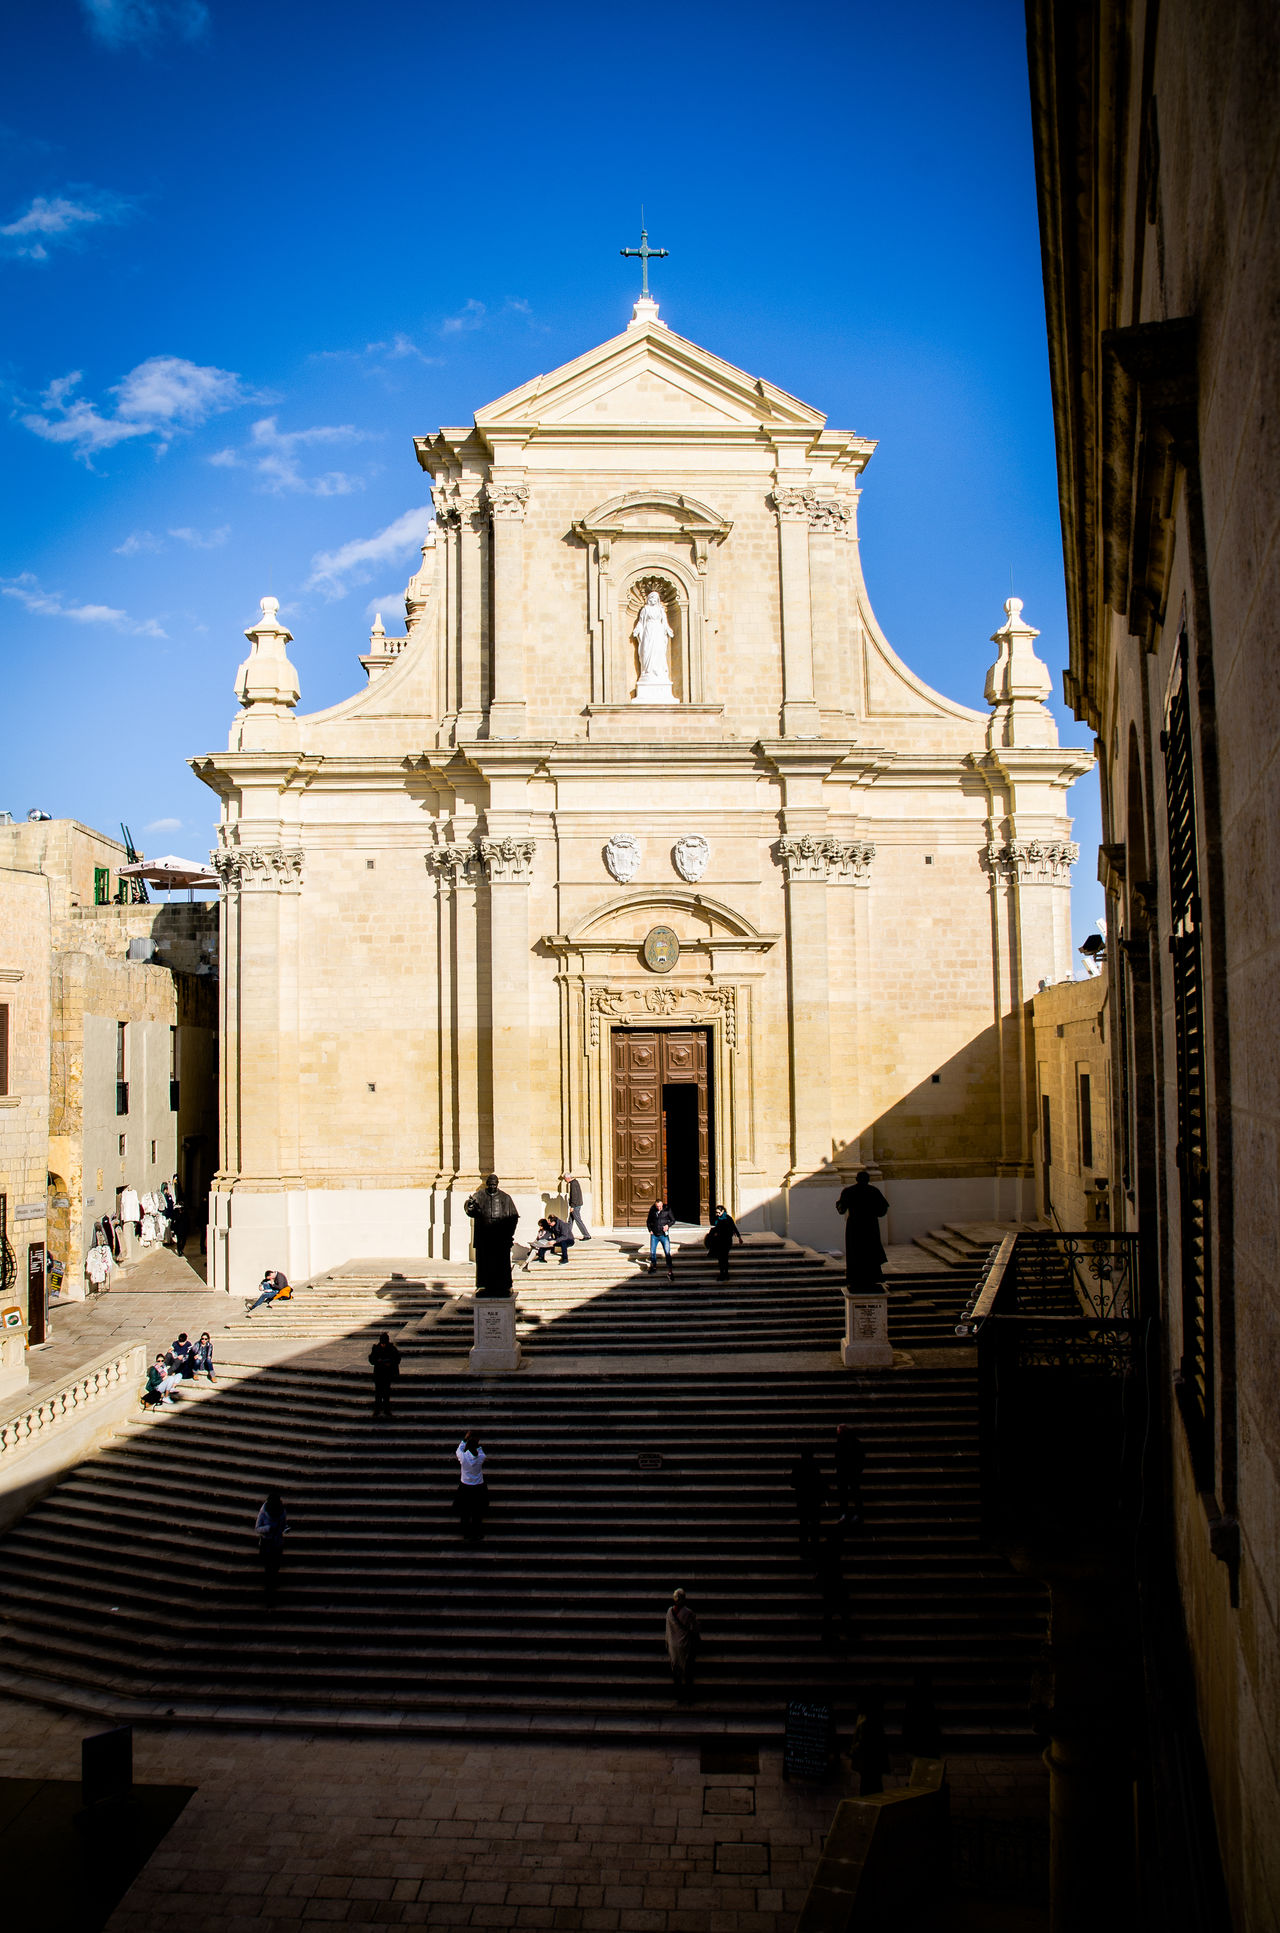 Architecture Baroque Style Building Exterior Built Structure City Cross Day Dome No People Outdoors Place Of Worship Pleading Politics And Government Religion Sculpture Sky Spirituality Statue Travel Destinations